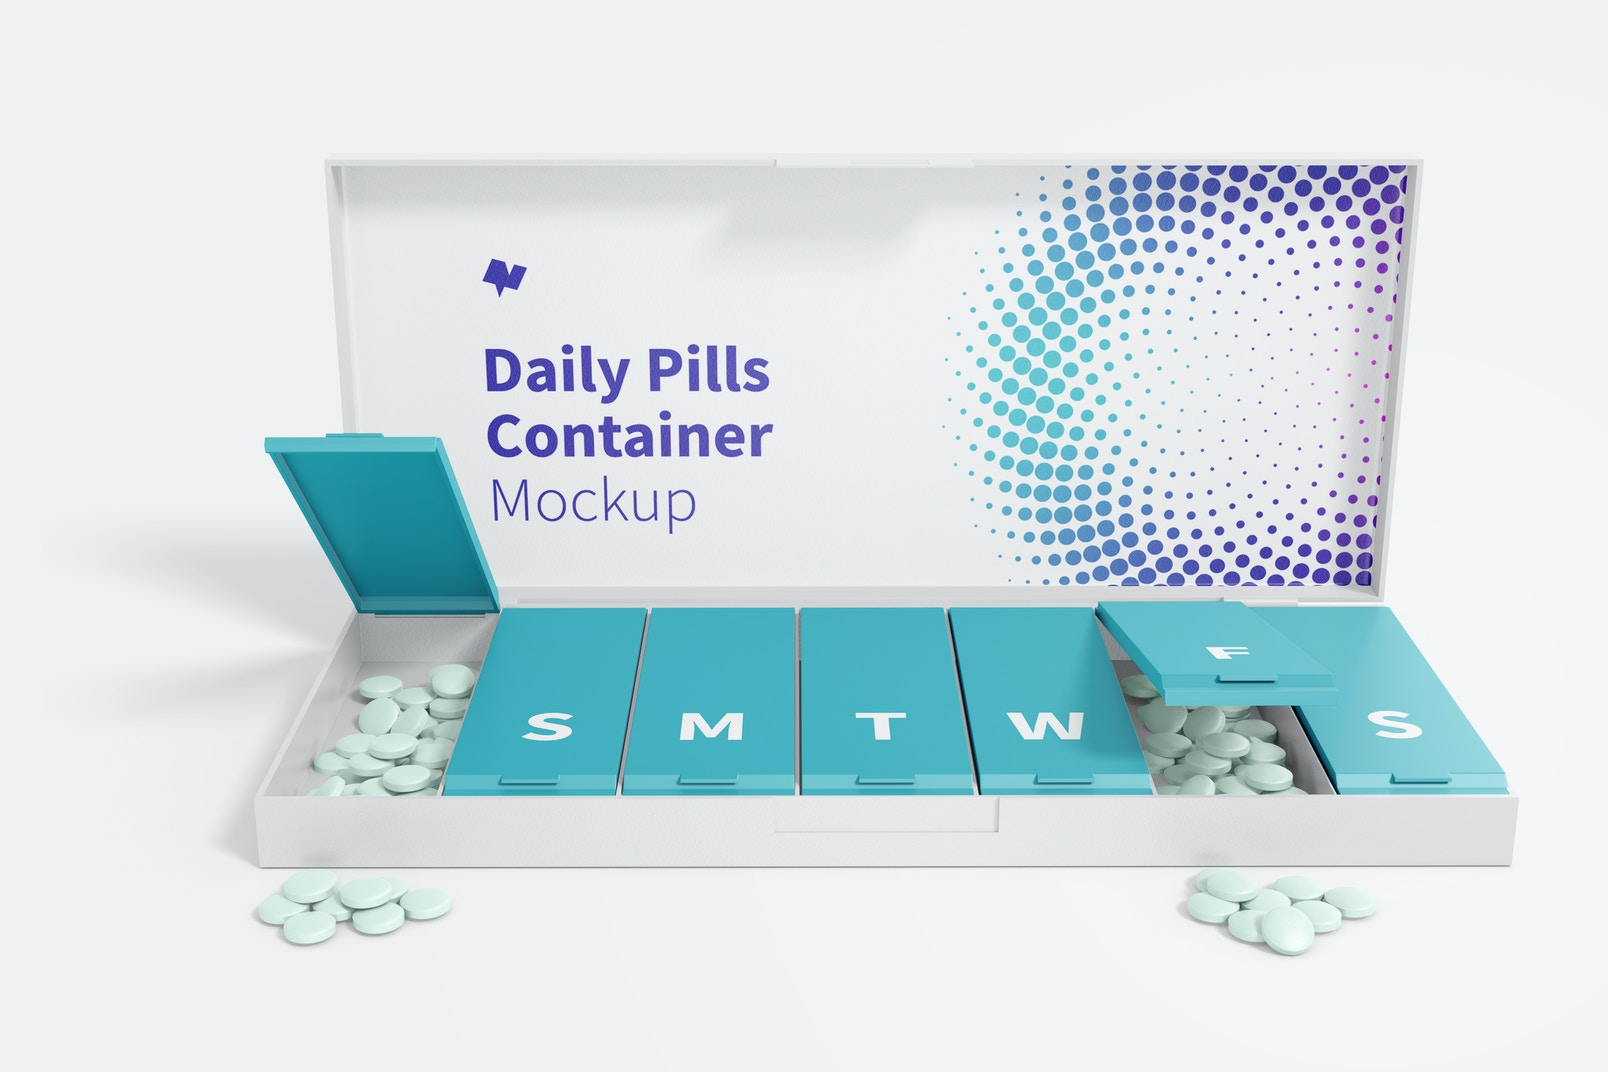 Daily Pills Container Mockup, Front View